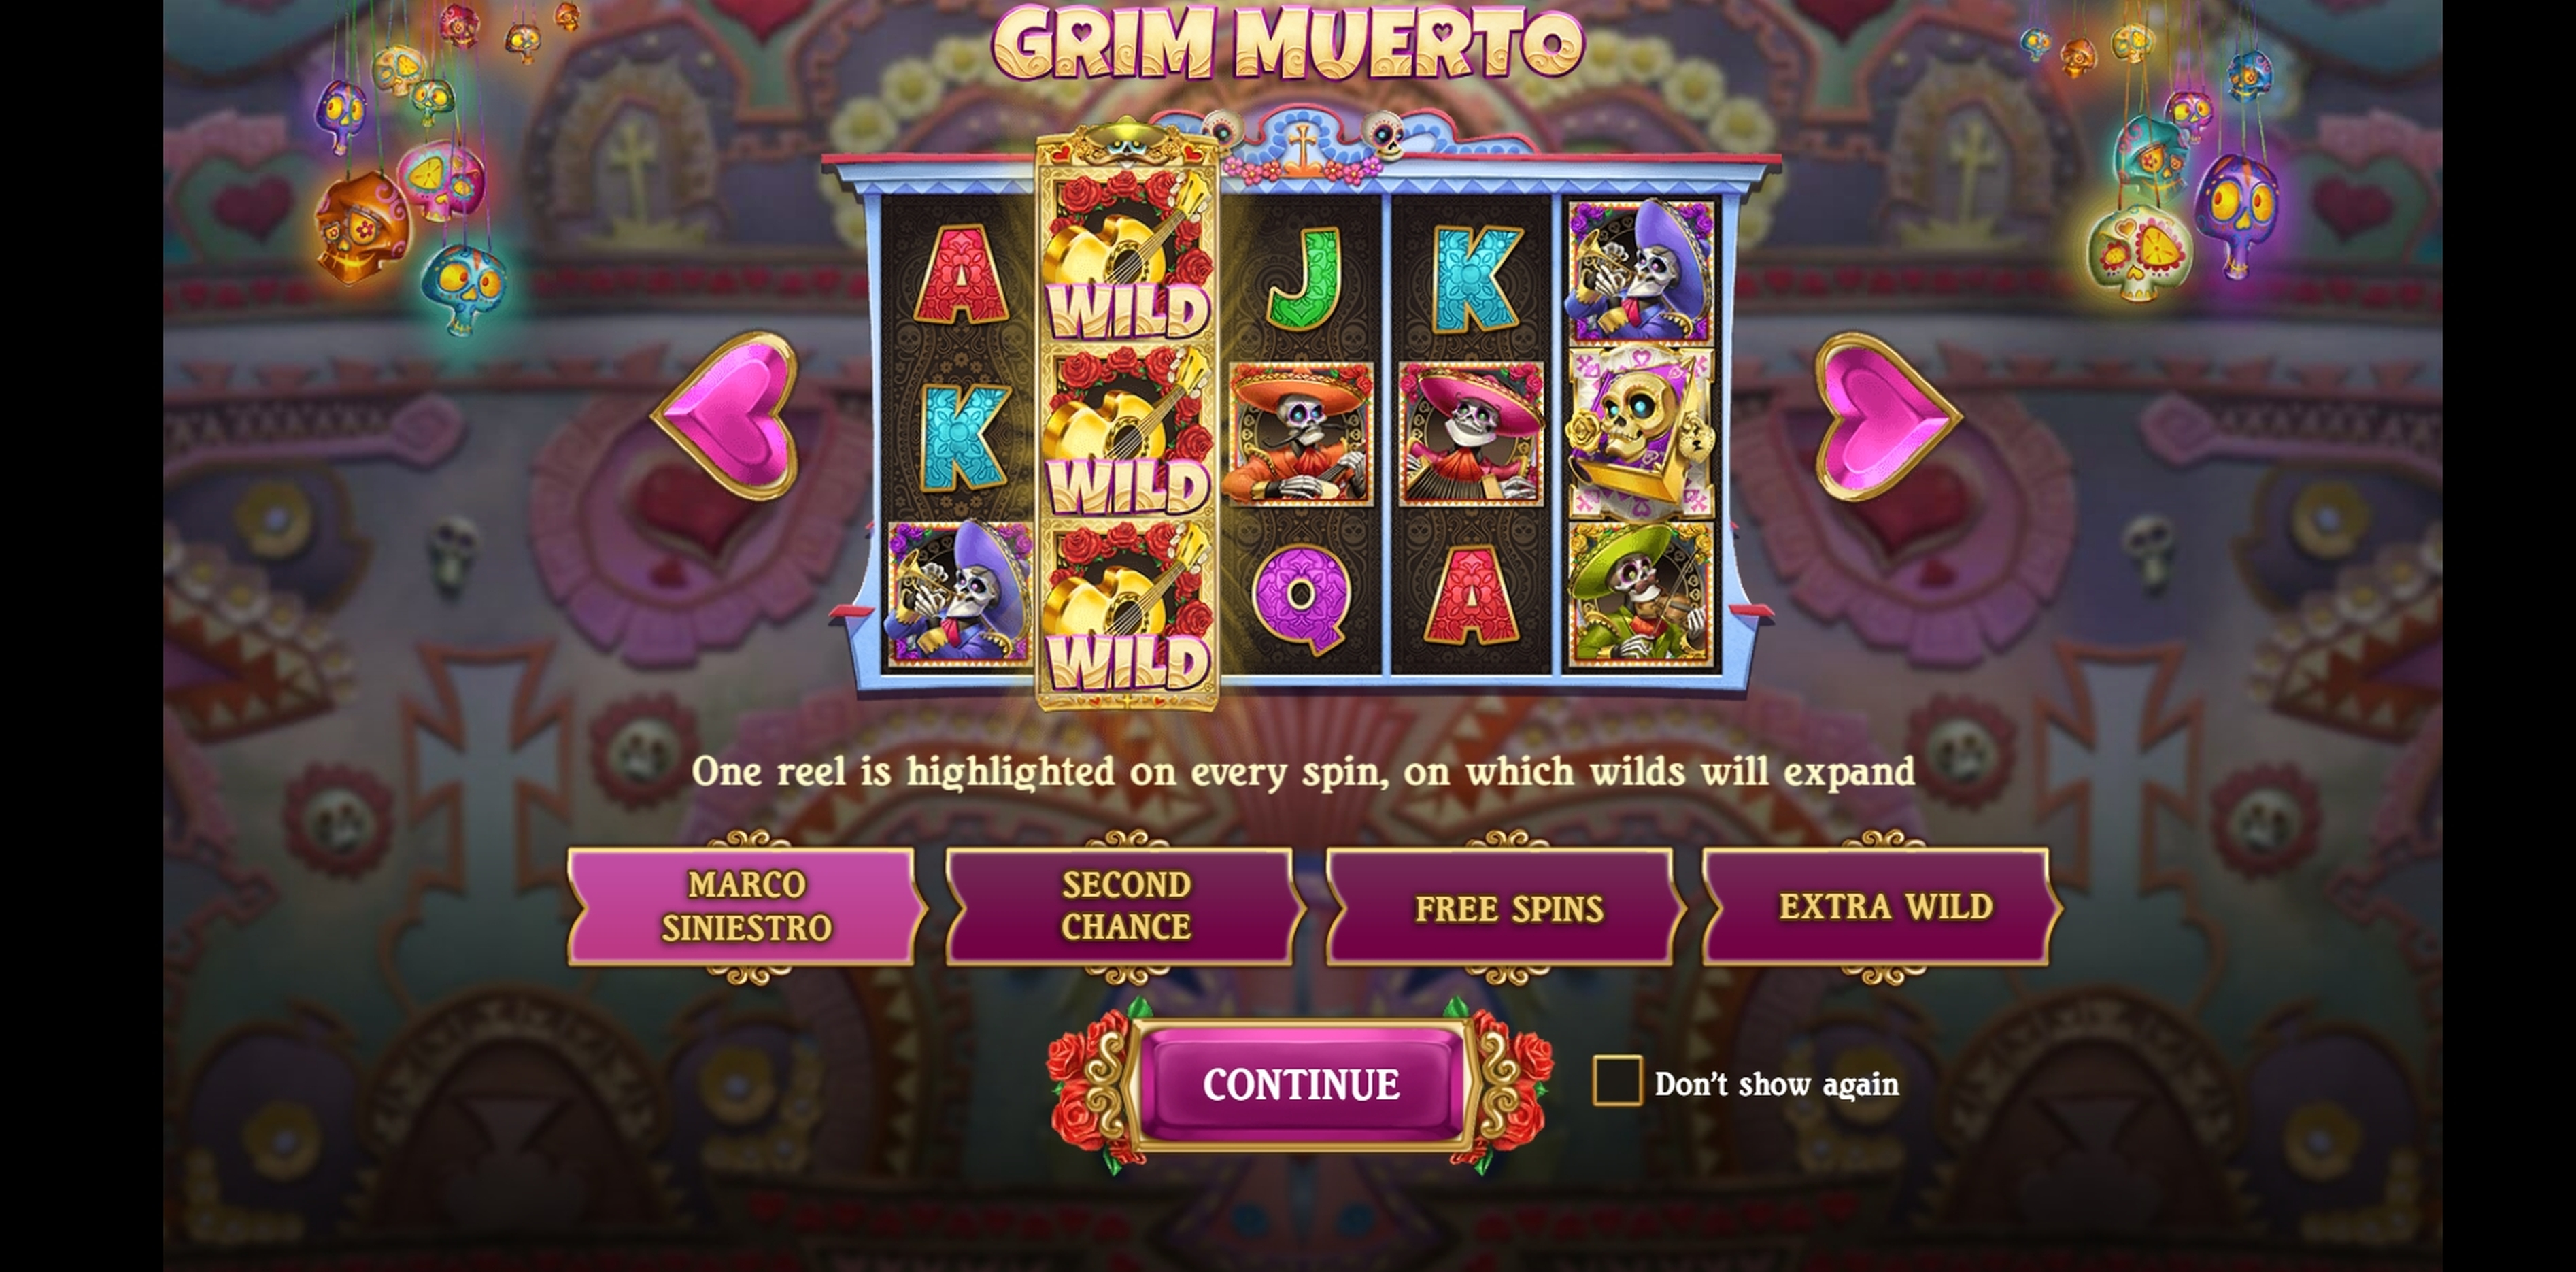 Play Grim Muerto Free Casino Slot Game by Playn GO